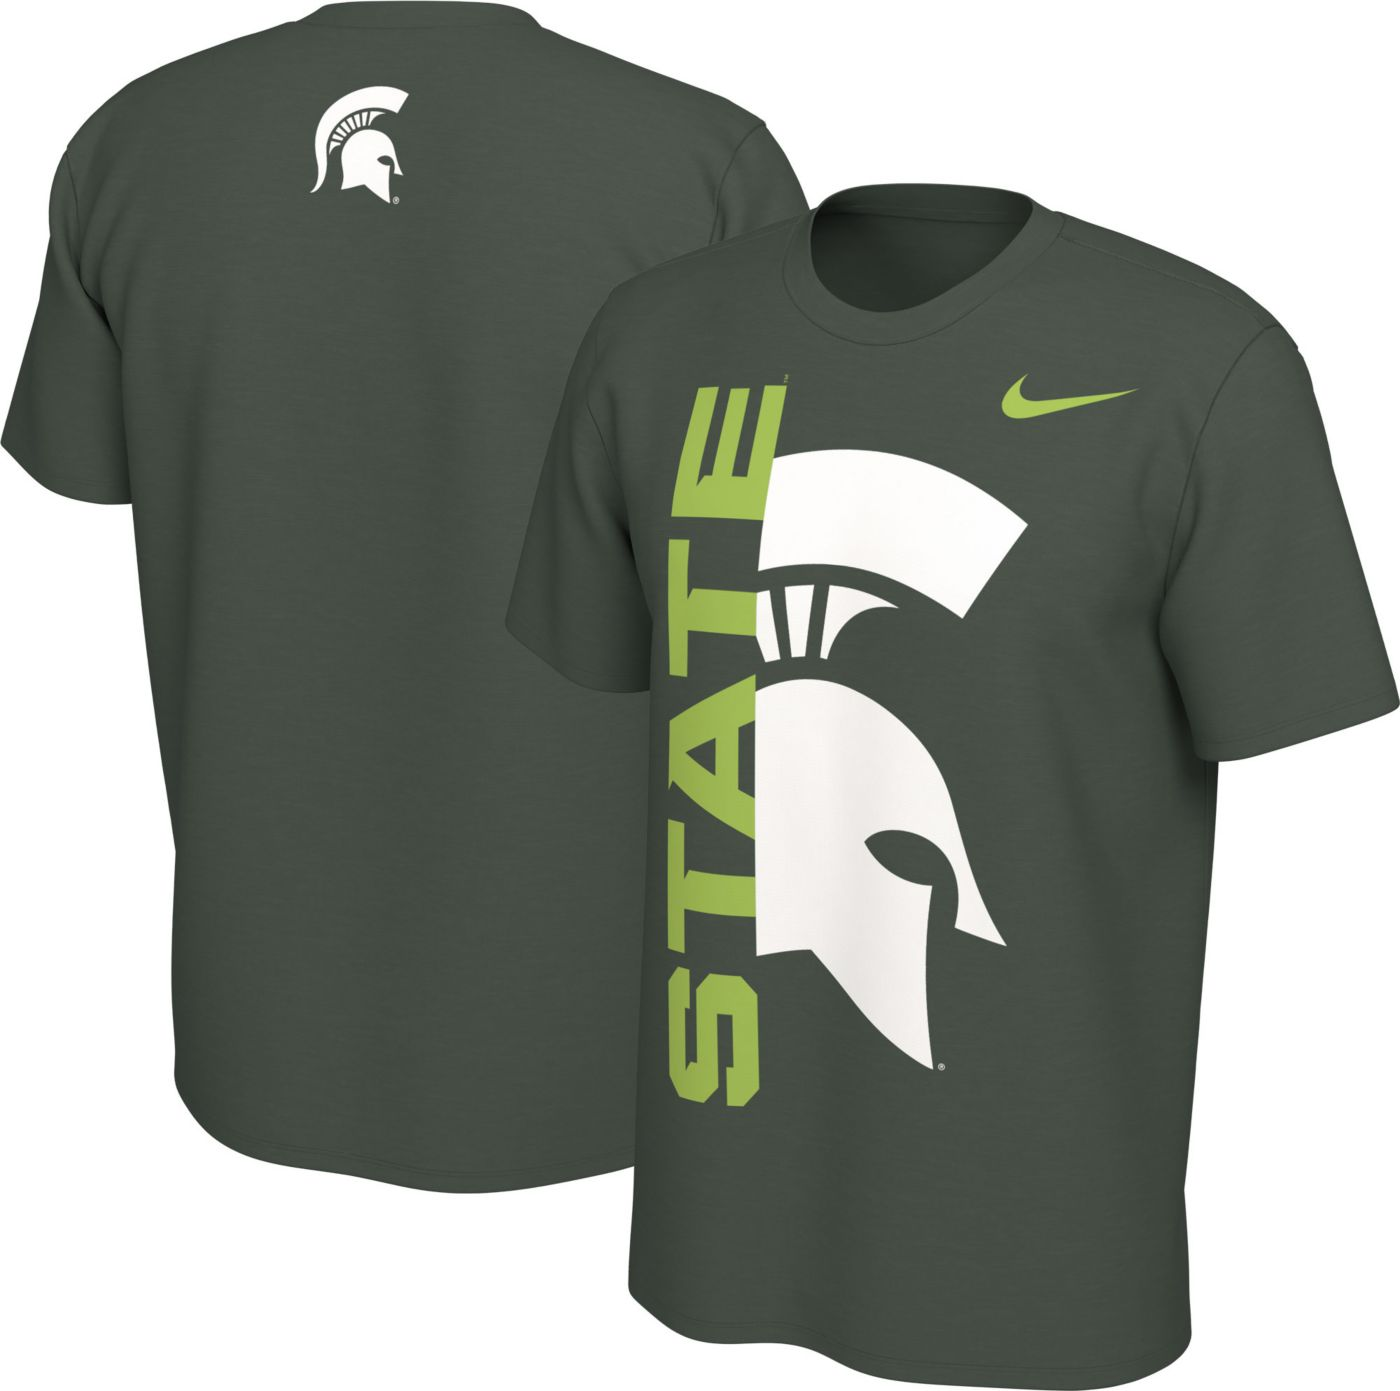 Nike Men's Michigan State Spartans Green Energy Pack Highlight T-Shirt